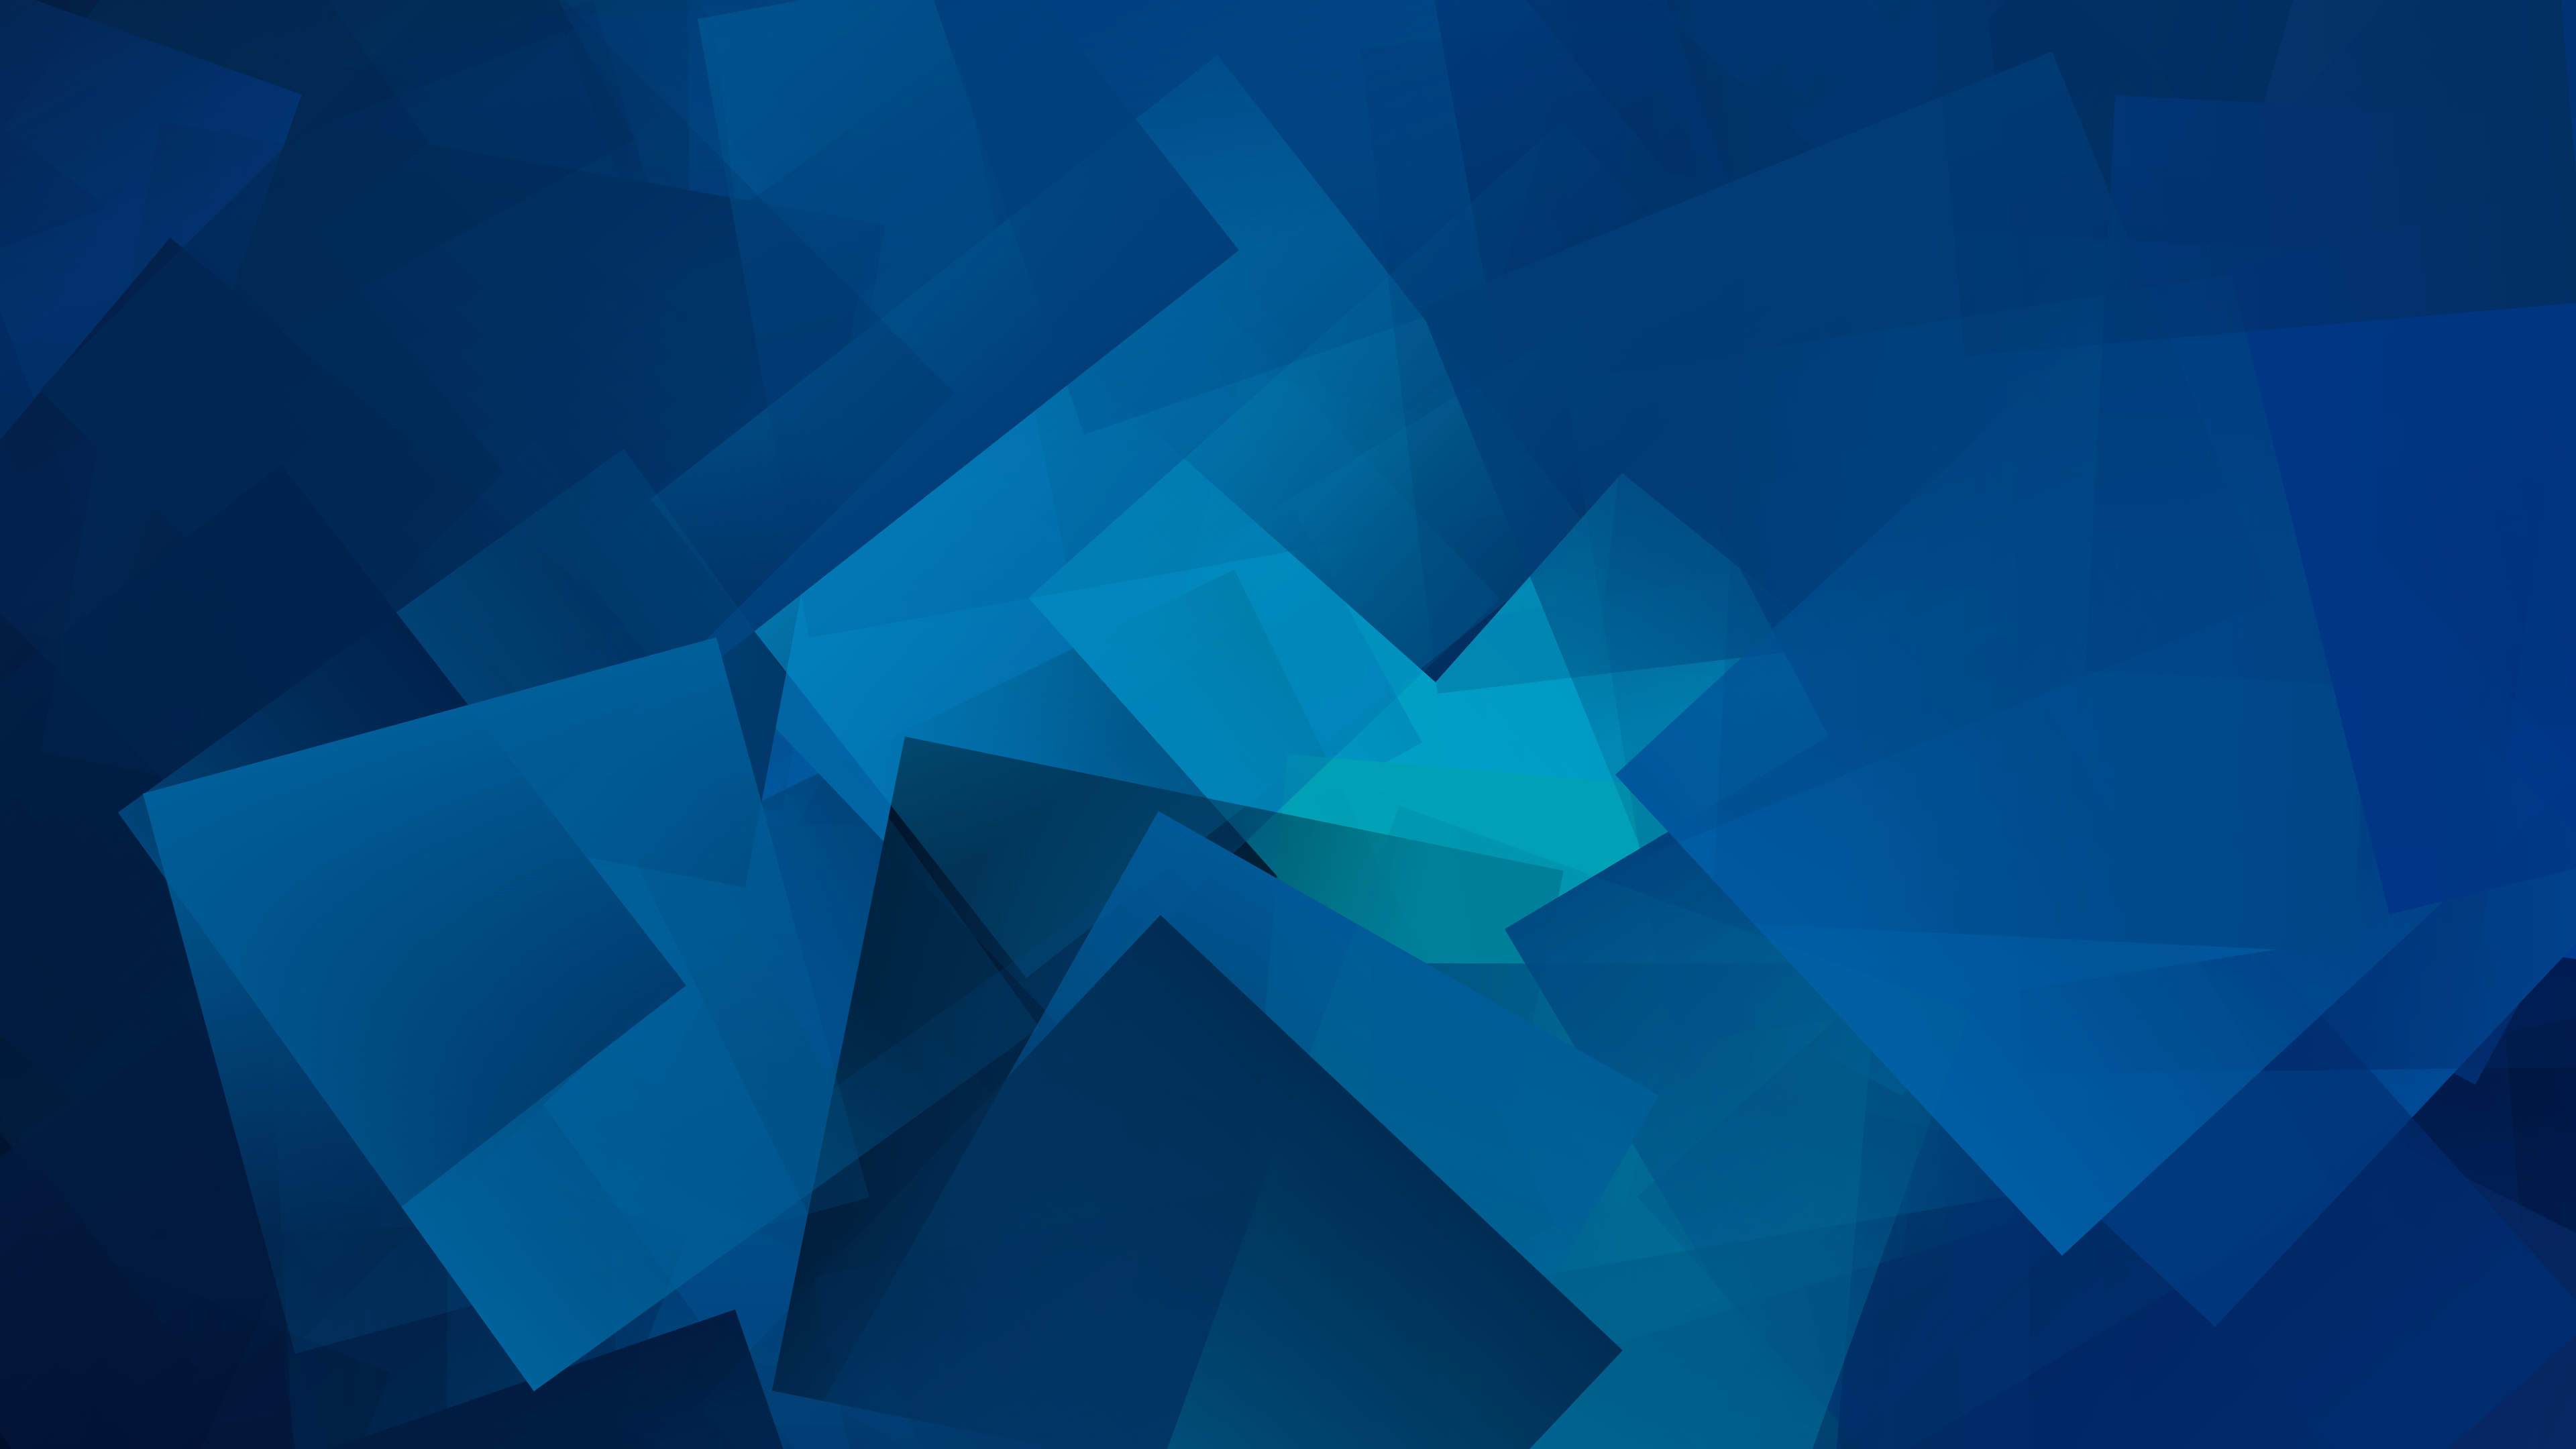 Cube Geometry Gradient 4k Hd Abstract 4k Wallpapers